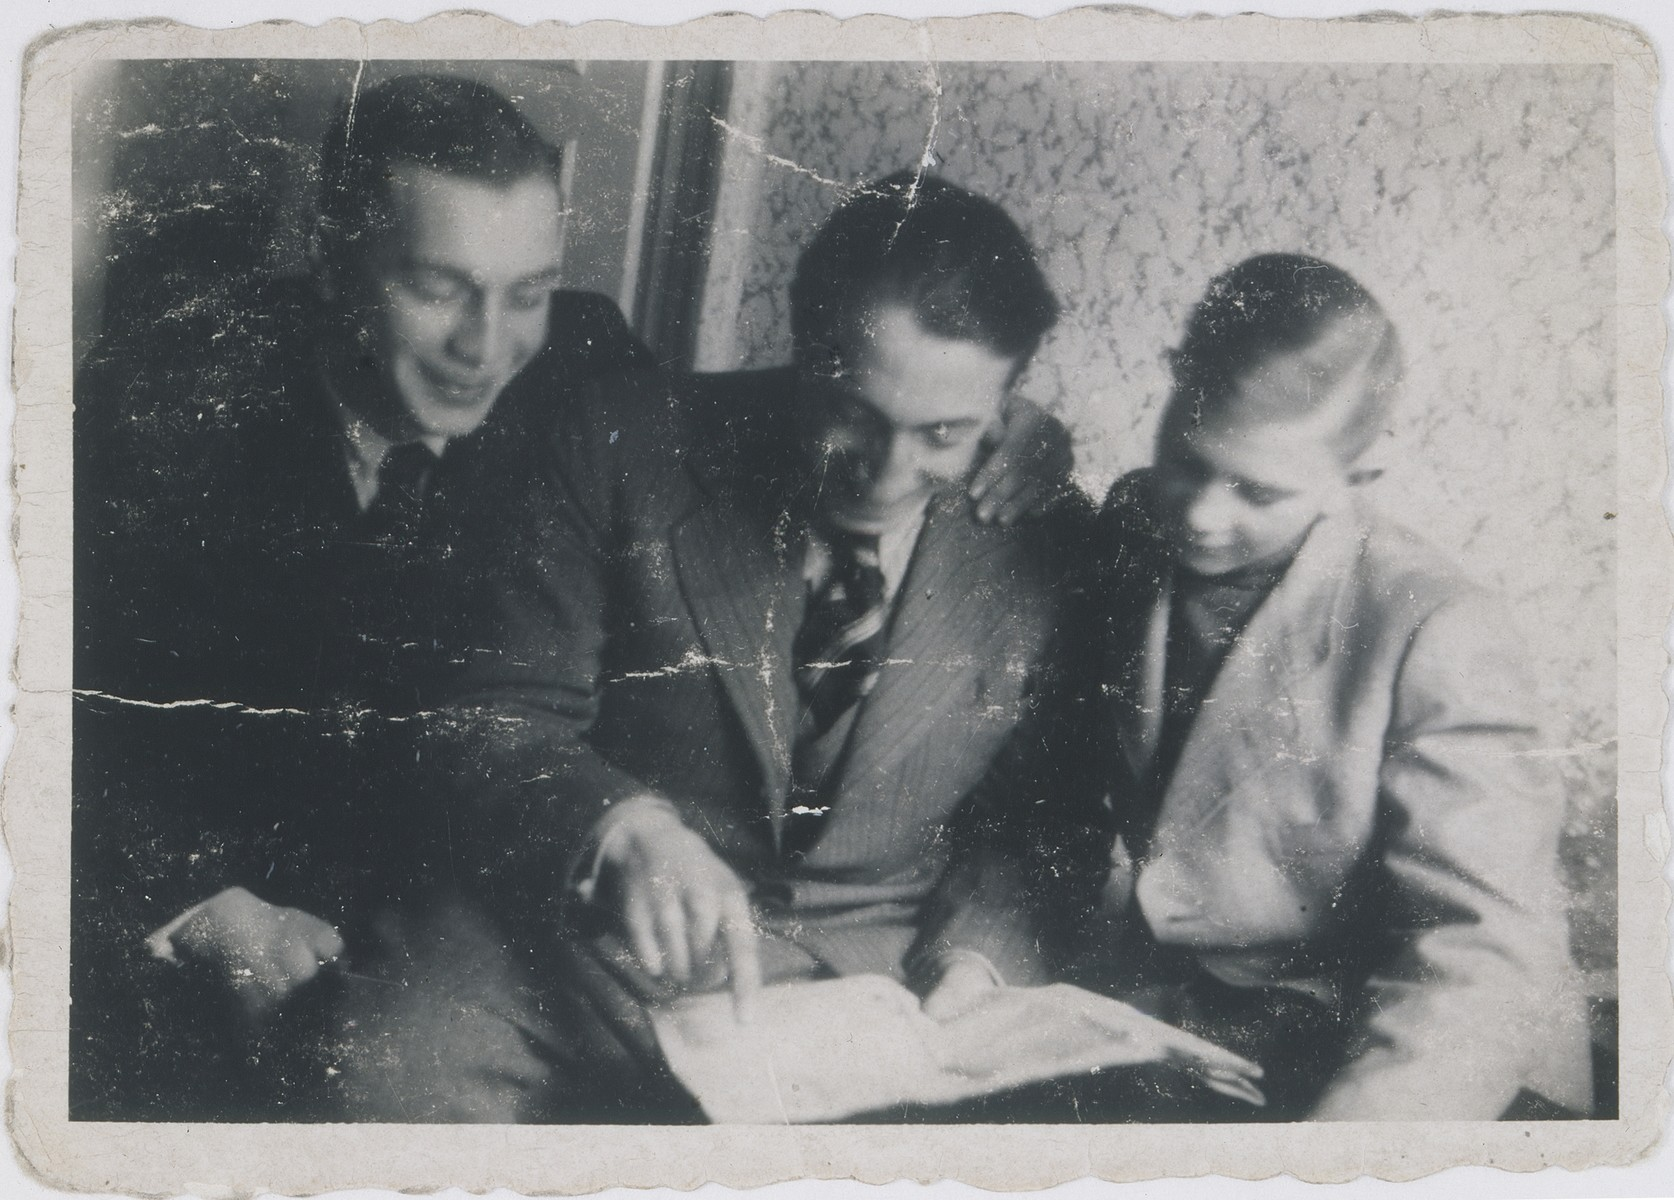 Jakob Wierzbicki (center) reads to Jan Kostanski (right) and Edek (left) in the Warsaw ghetto.